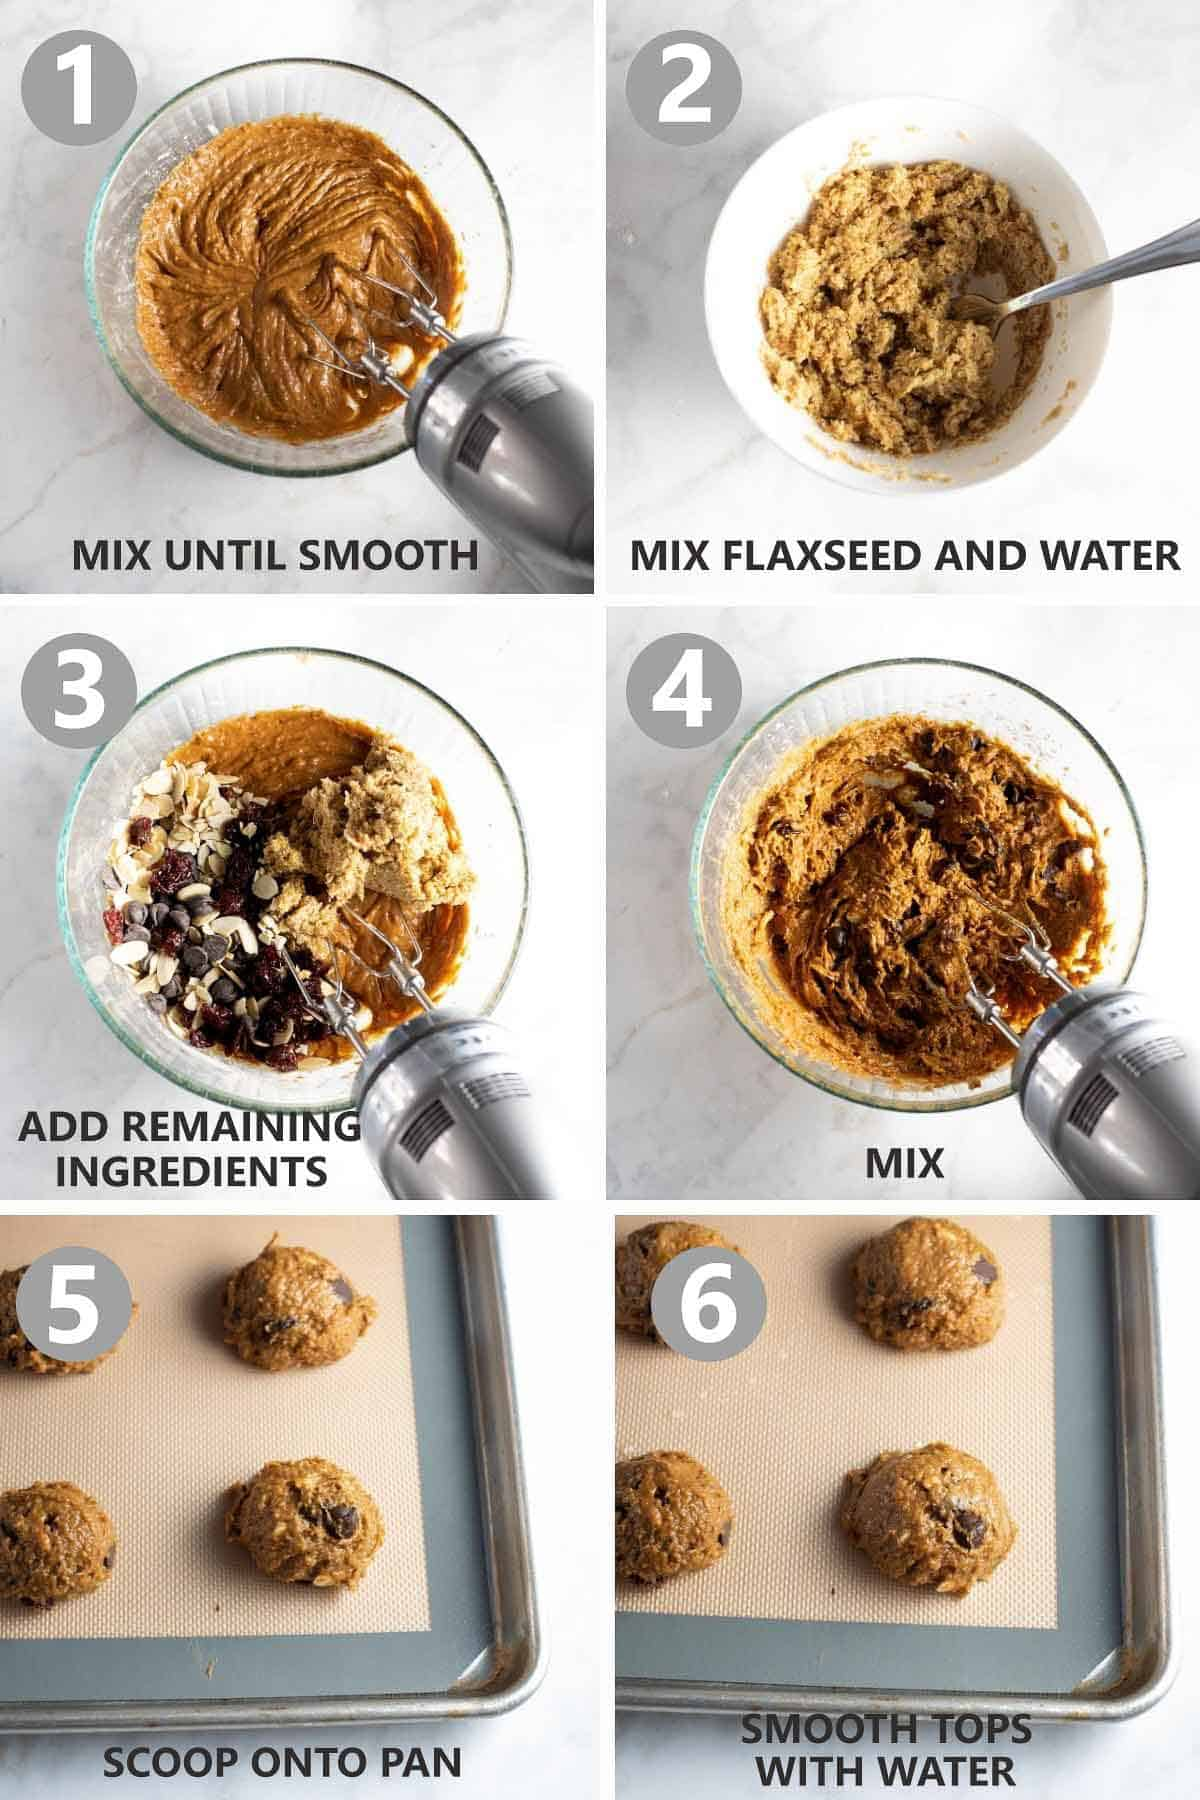 step by step photos of how to make the cookies